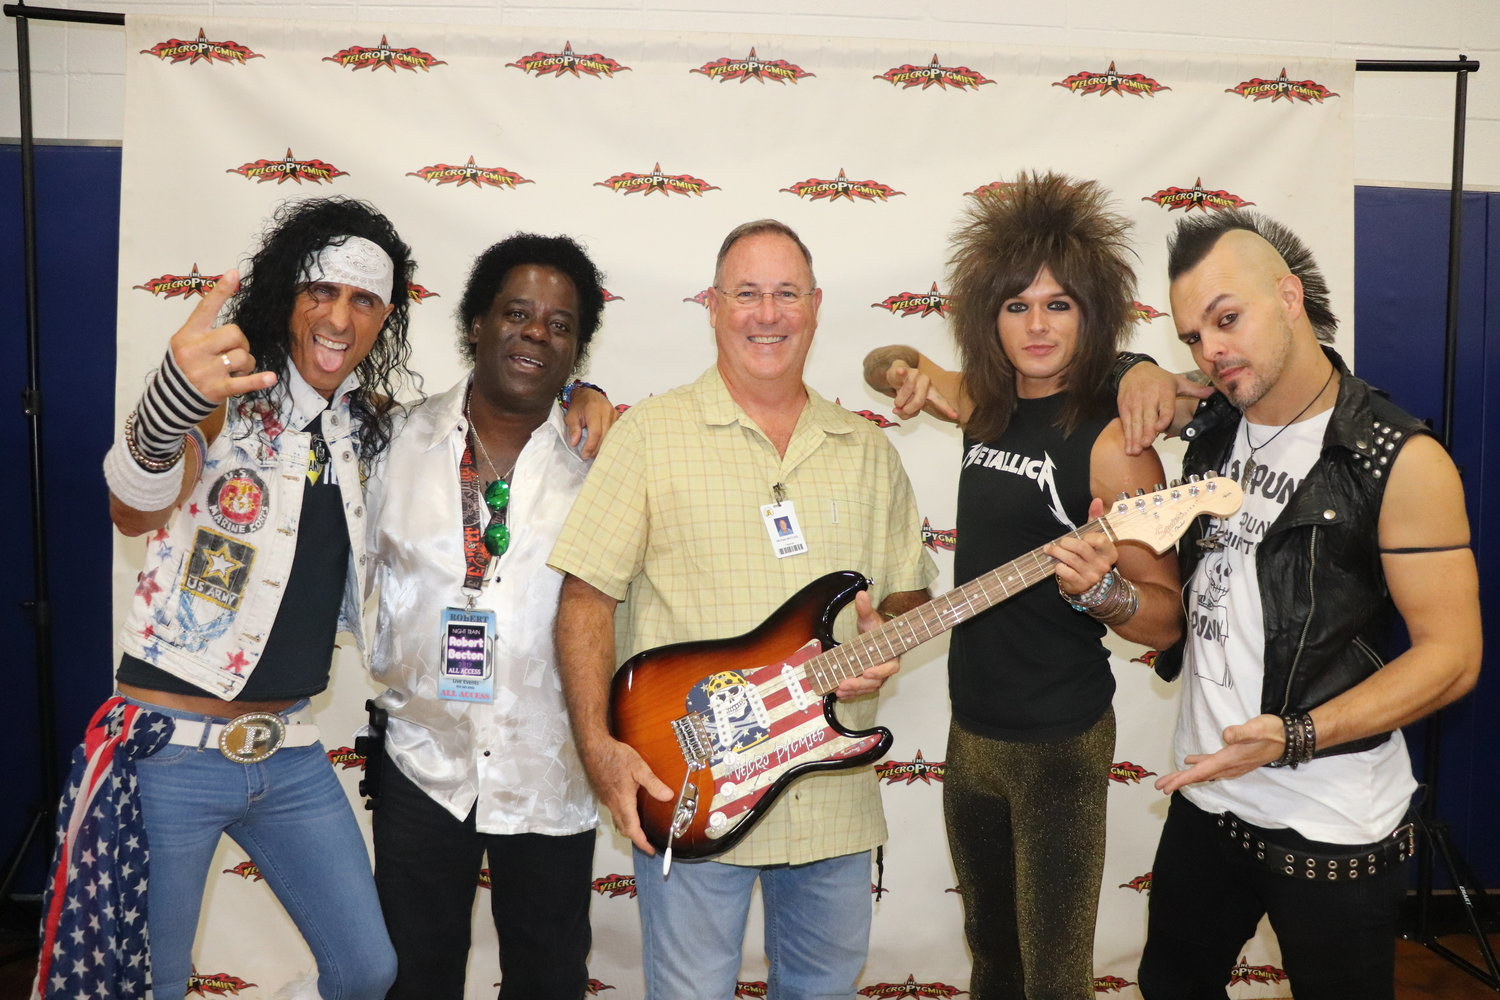 Michael McCrady, PiraGraphiX career tech instructor, poses with the custom guitar his student designed and members of the Velcro Pygmies.